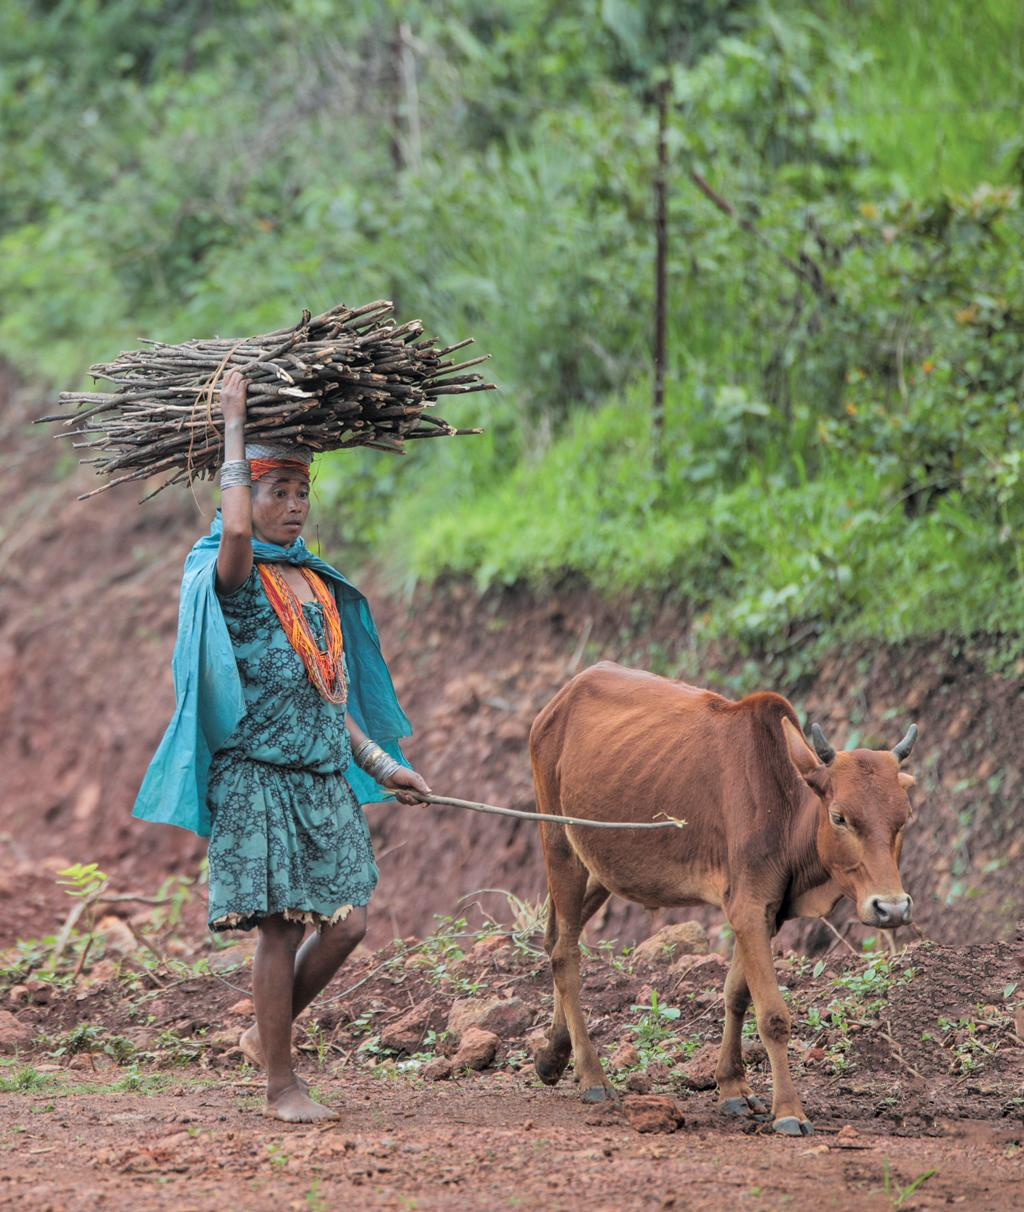 Malkangiri, Odisha: Women in India do almost 10 times as much unpaid work as men. Carrying big bundles of firewood in rural areas often falls on women's shoulders (Photo: Vikas Choudhary)